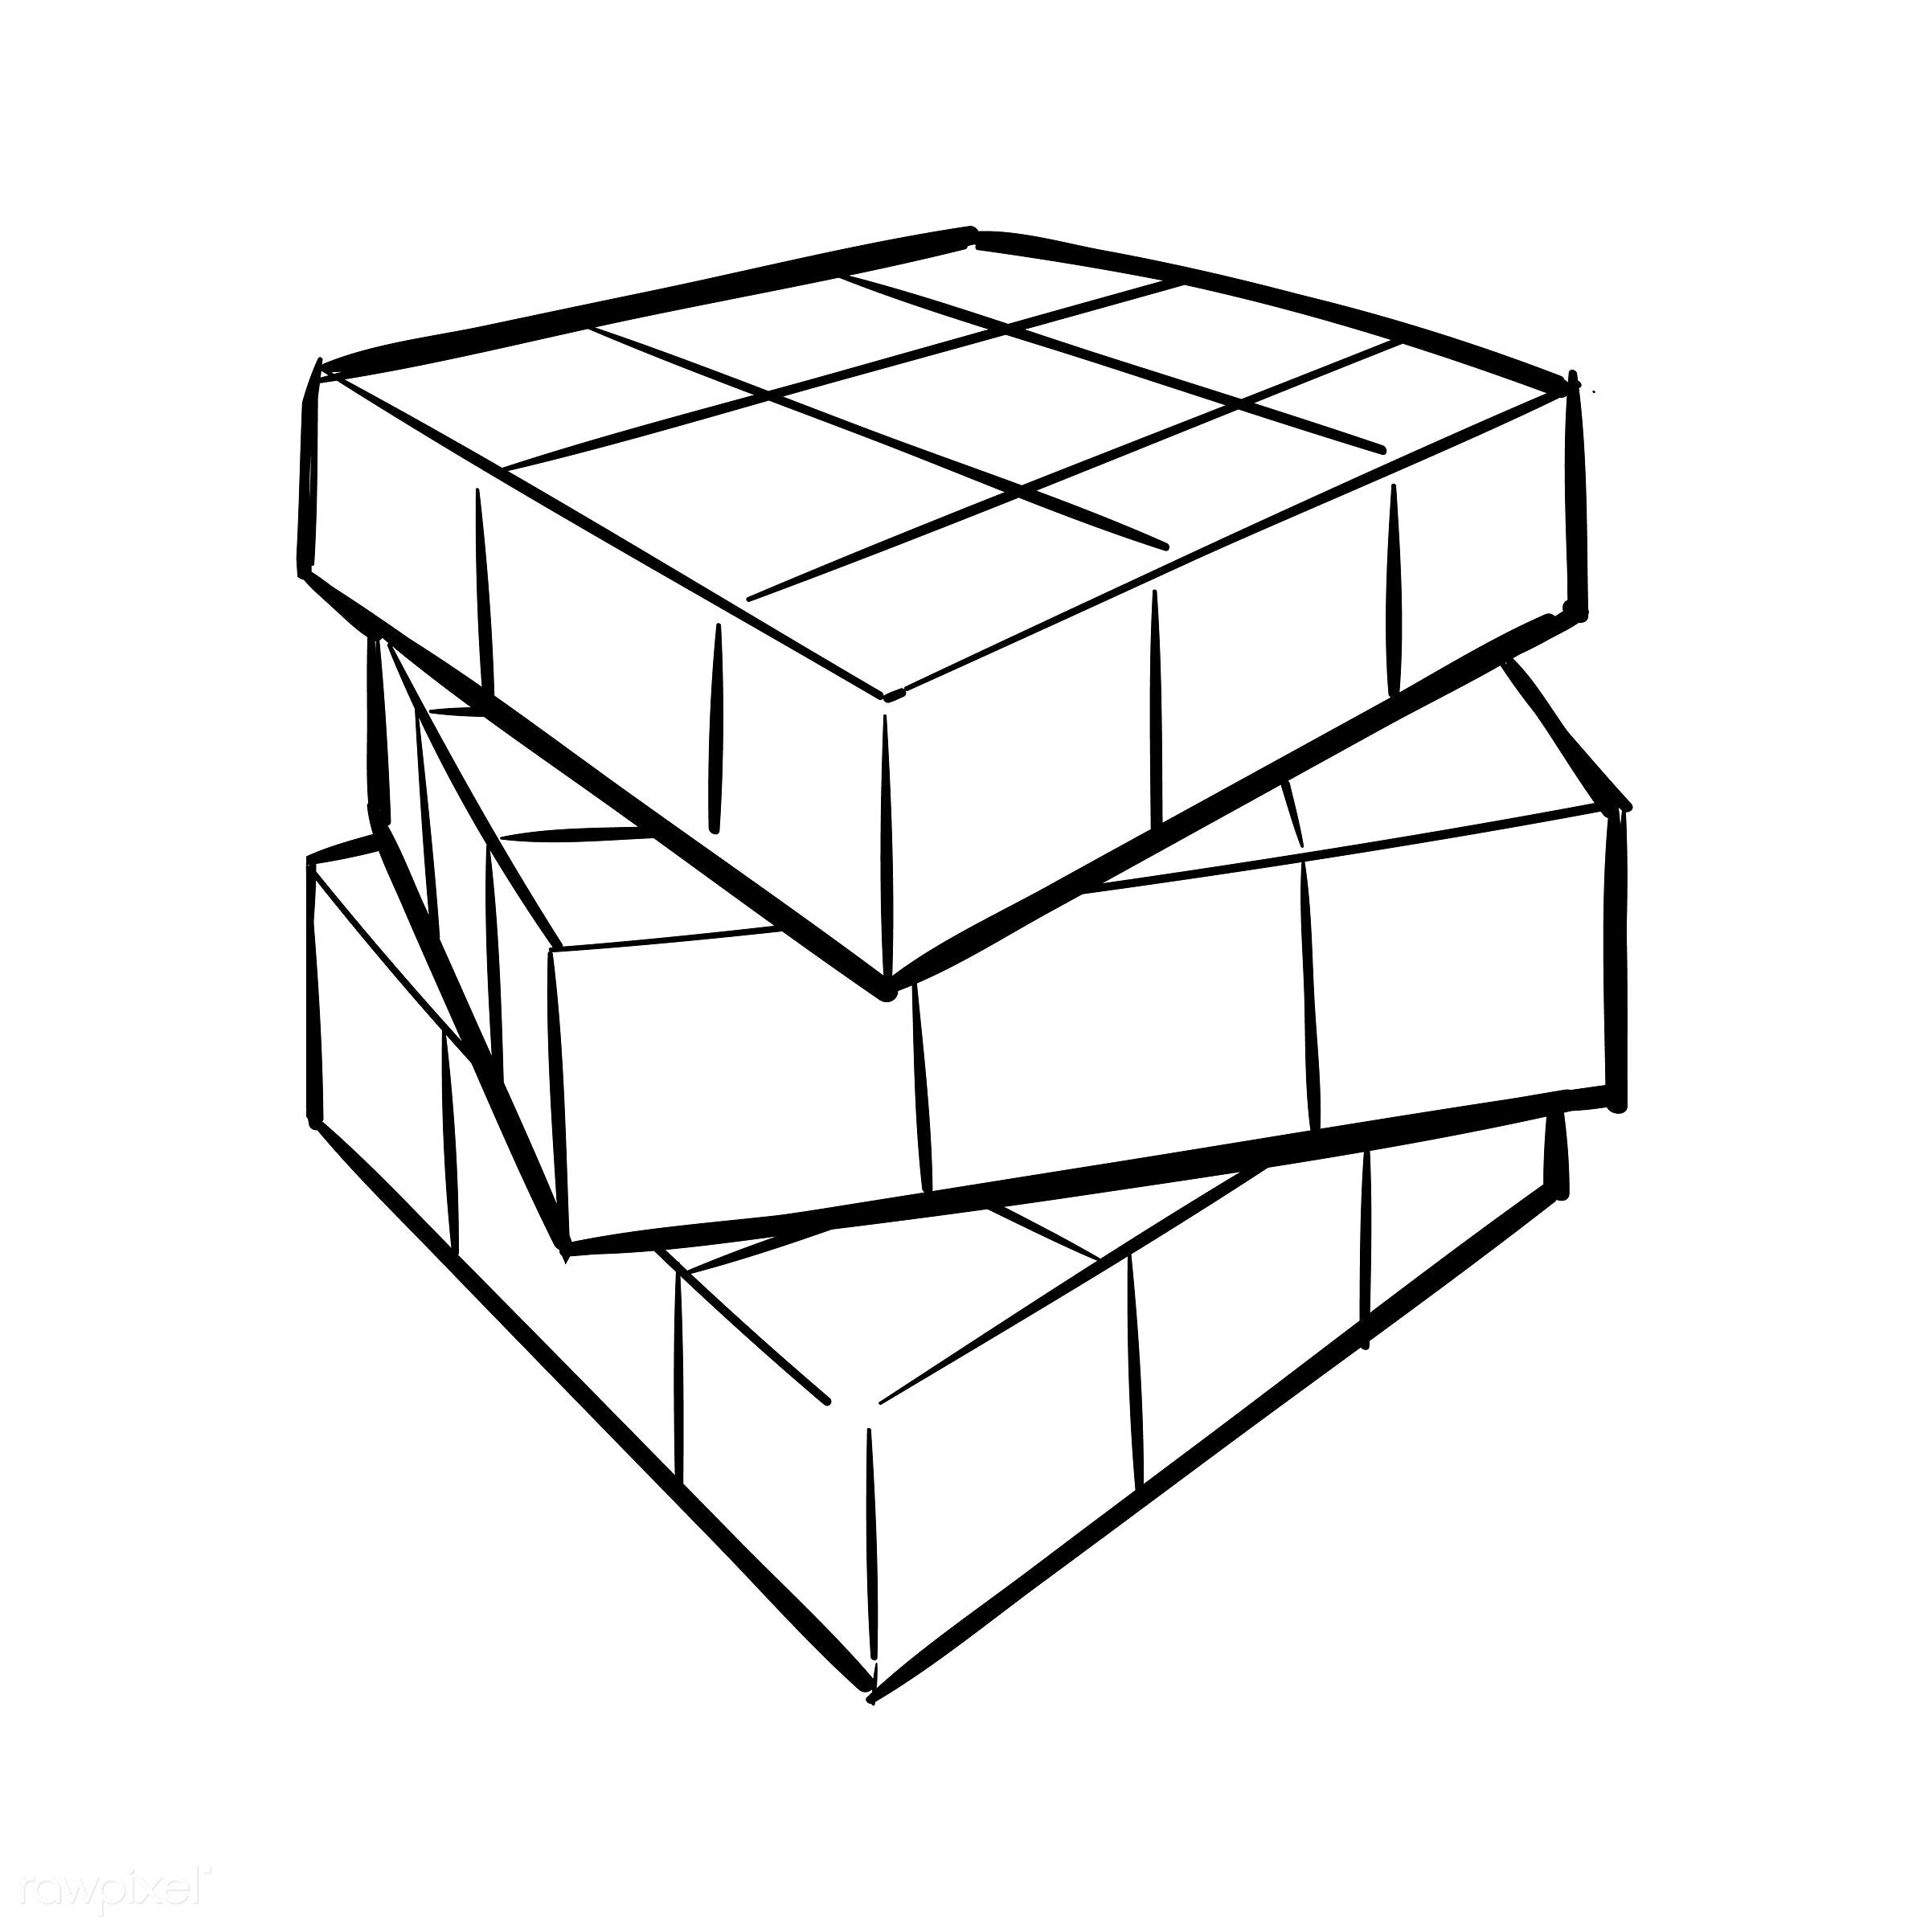 Hand drawing illustration of individuality concept - art, artwork, contrast, creative, creativity, cube, cubic, design,...